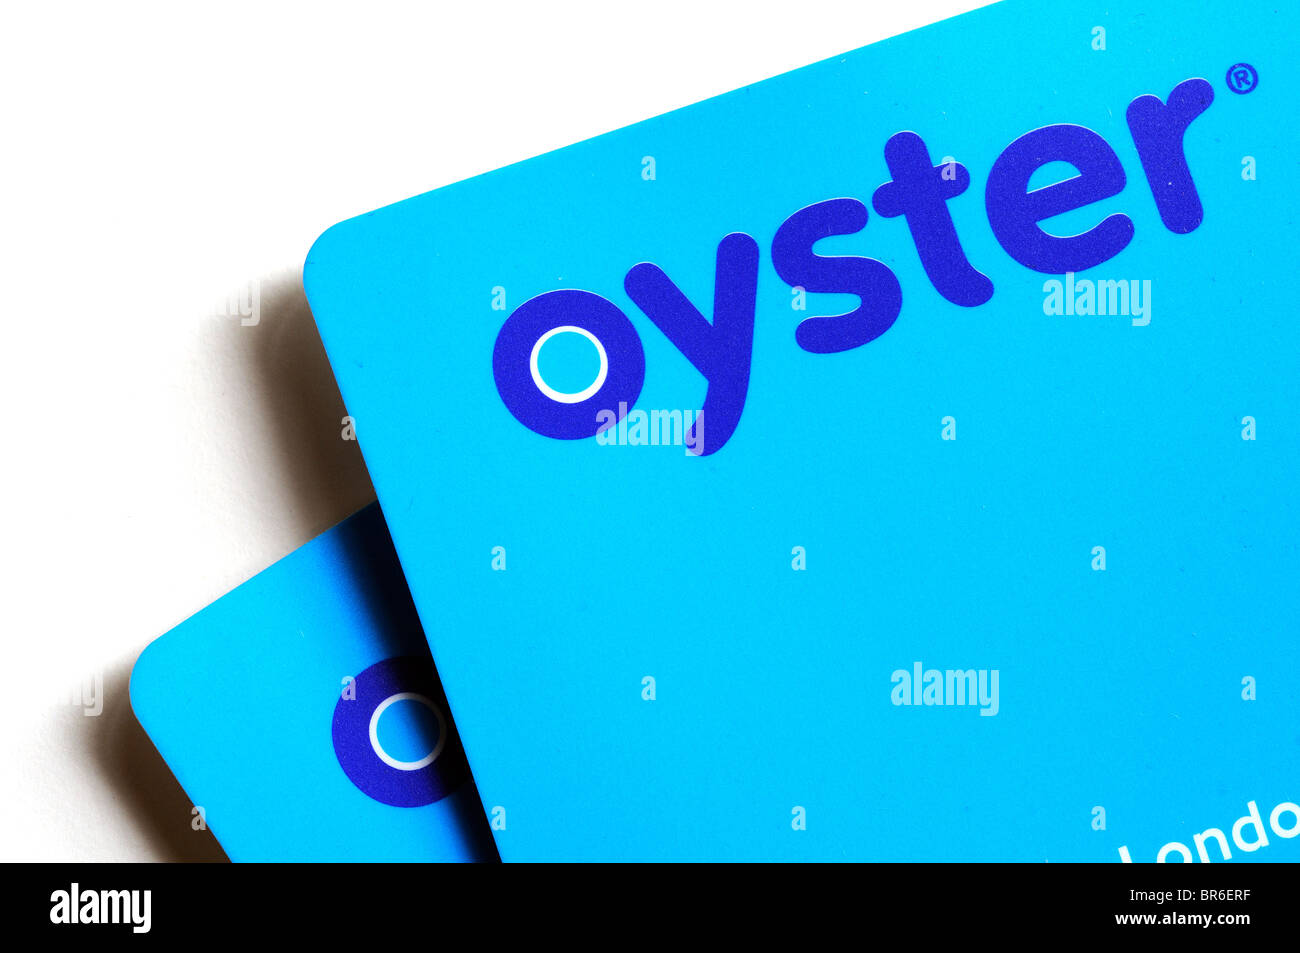 Oyster cards the cashless payment system for use on London public transport - Stock Image